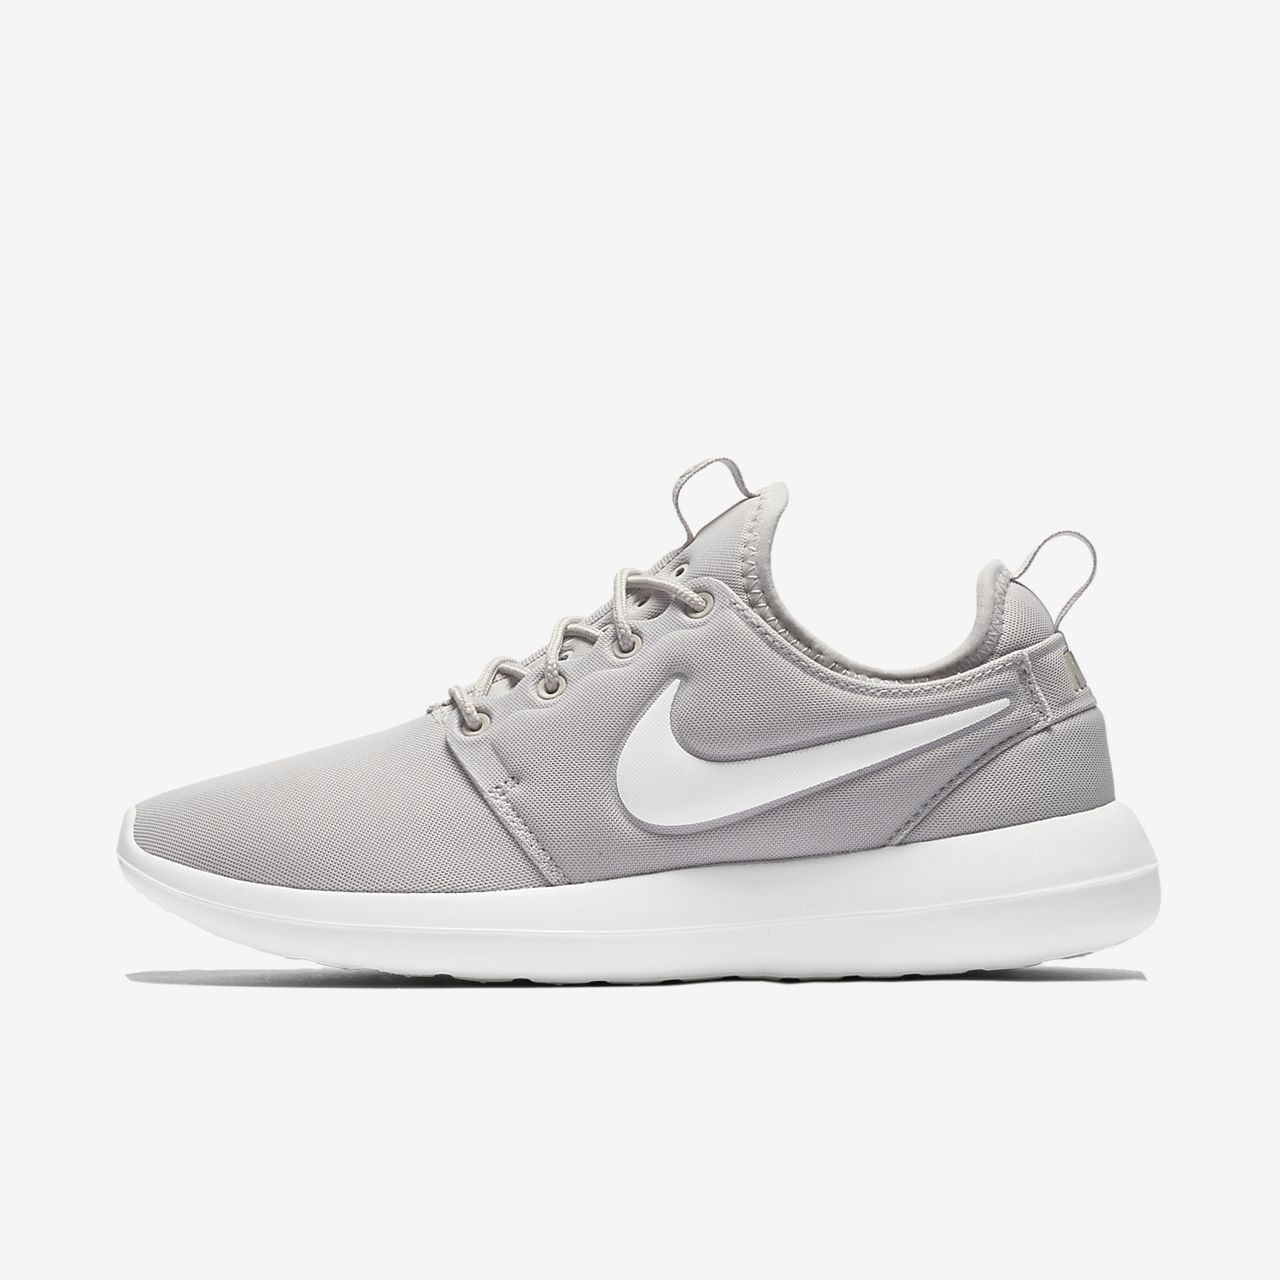 ... Chaussure Nike Roshe Two pour Femme